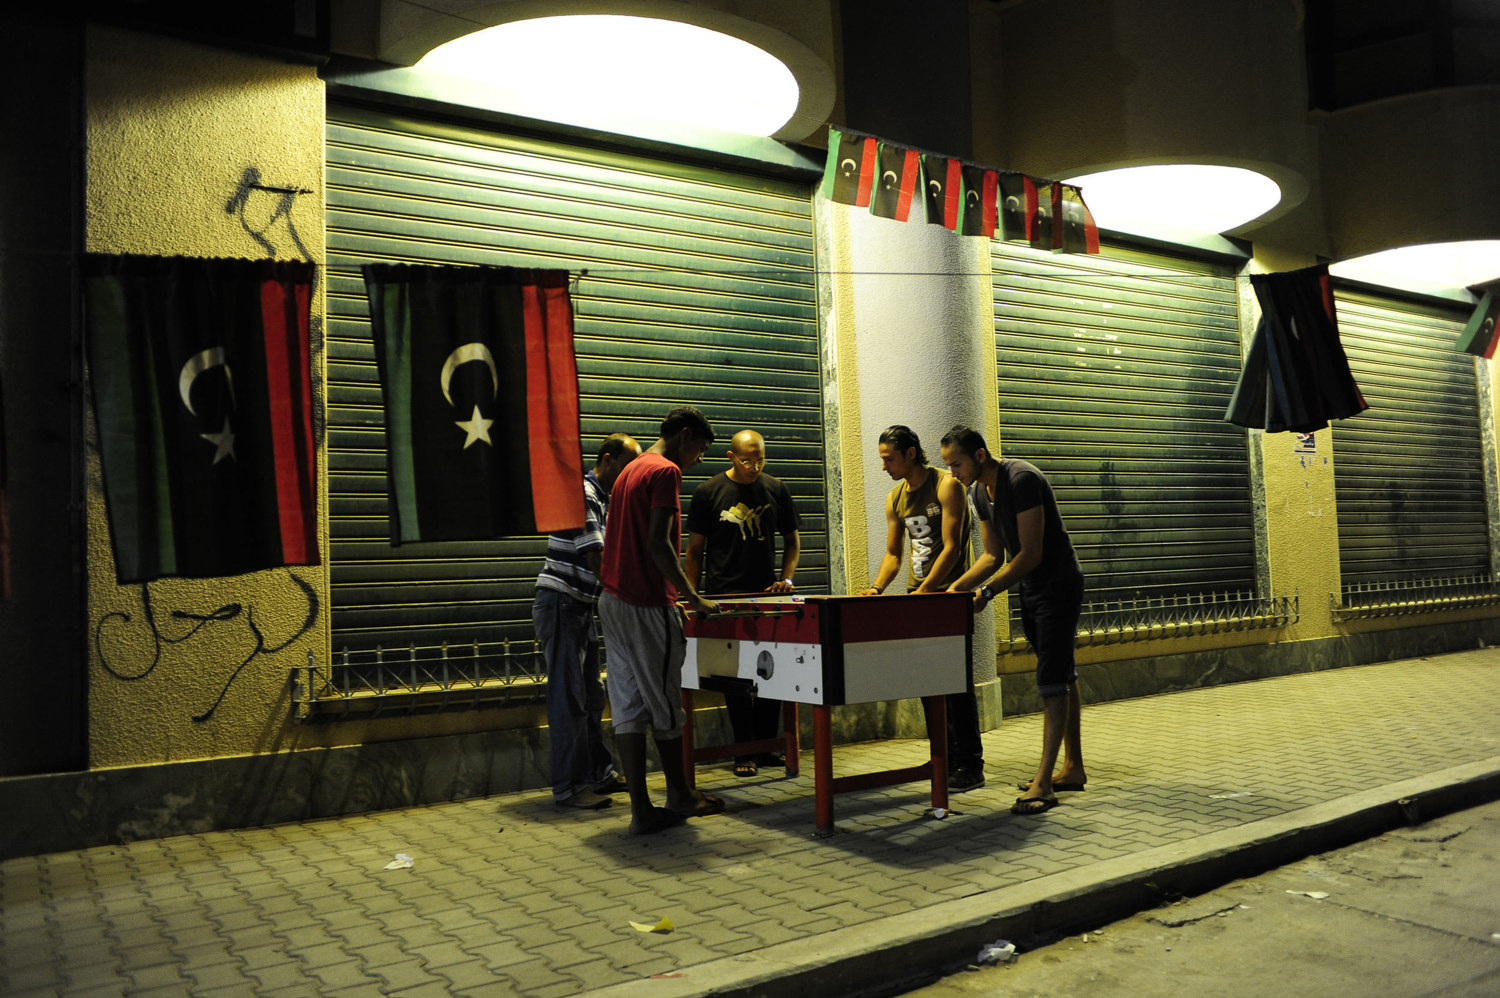 A group of men play table football of the country's first election since the end of the Gaddafi rule, July 6th, 2012. After 42 years of Muammar Gaddafi's reign, Libyans are participating in the first democratic election since 1969.